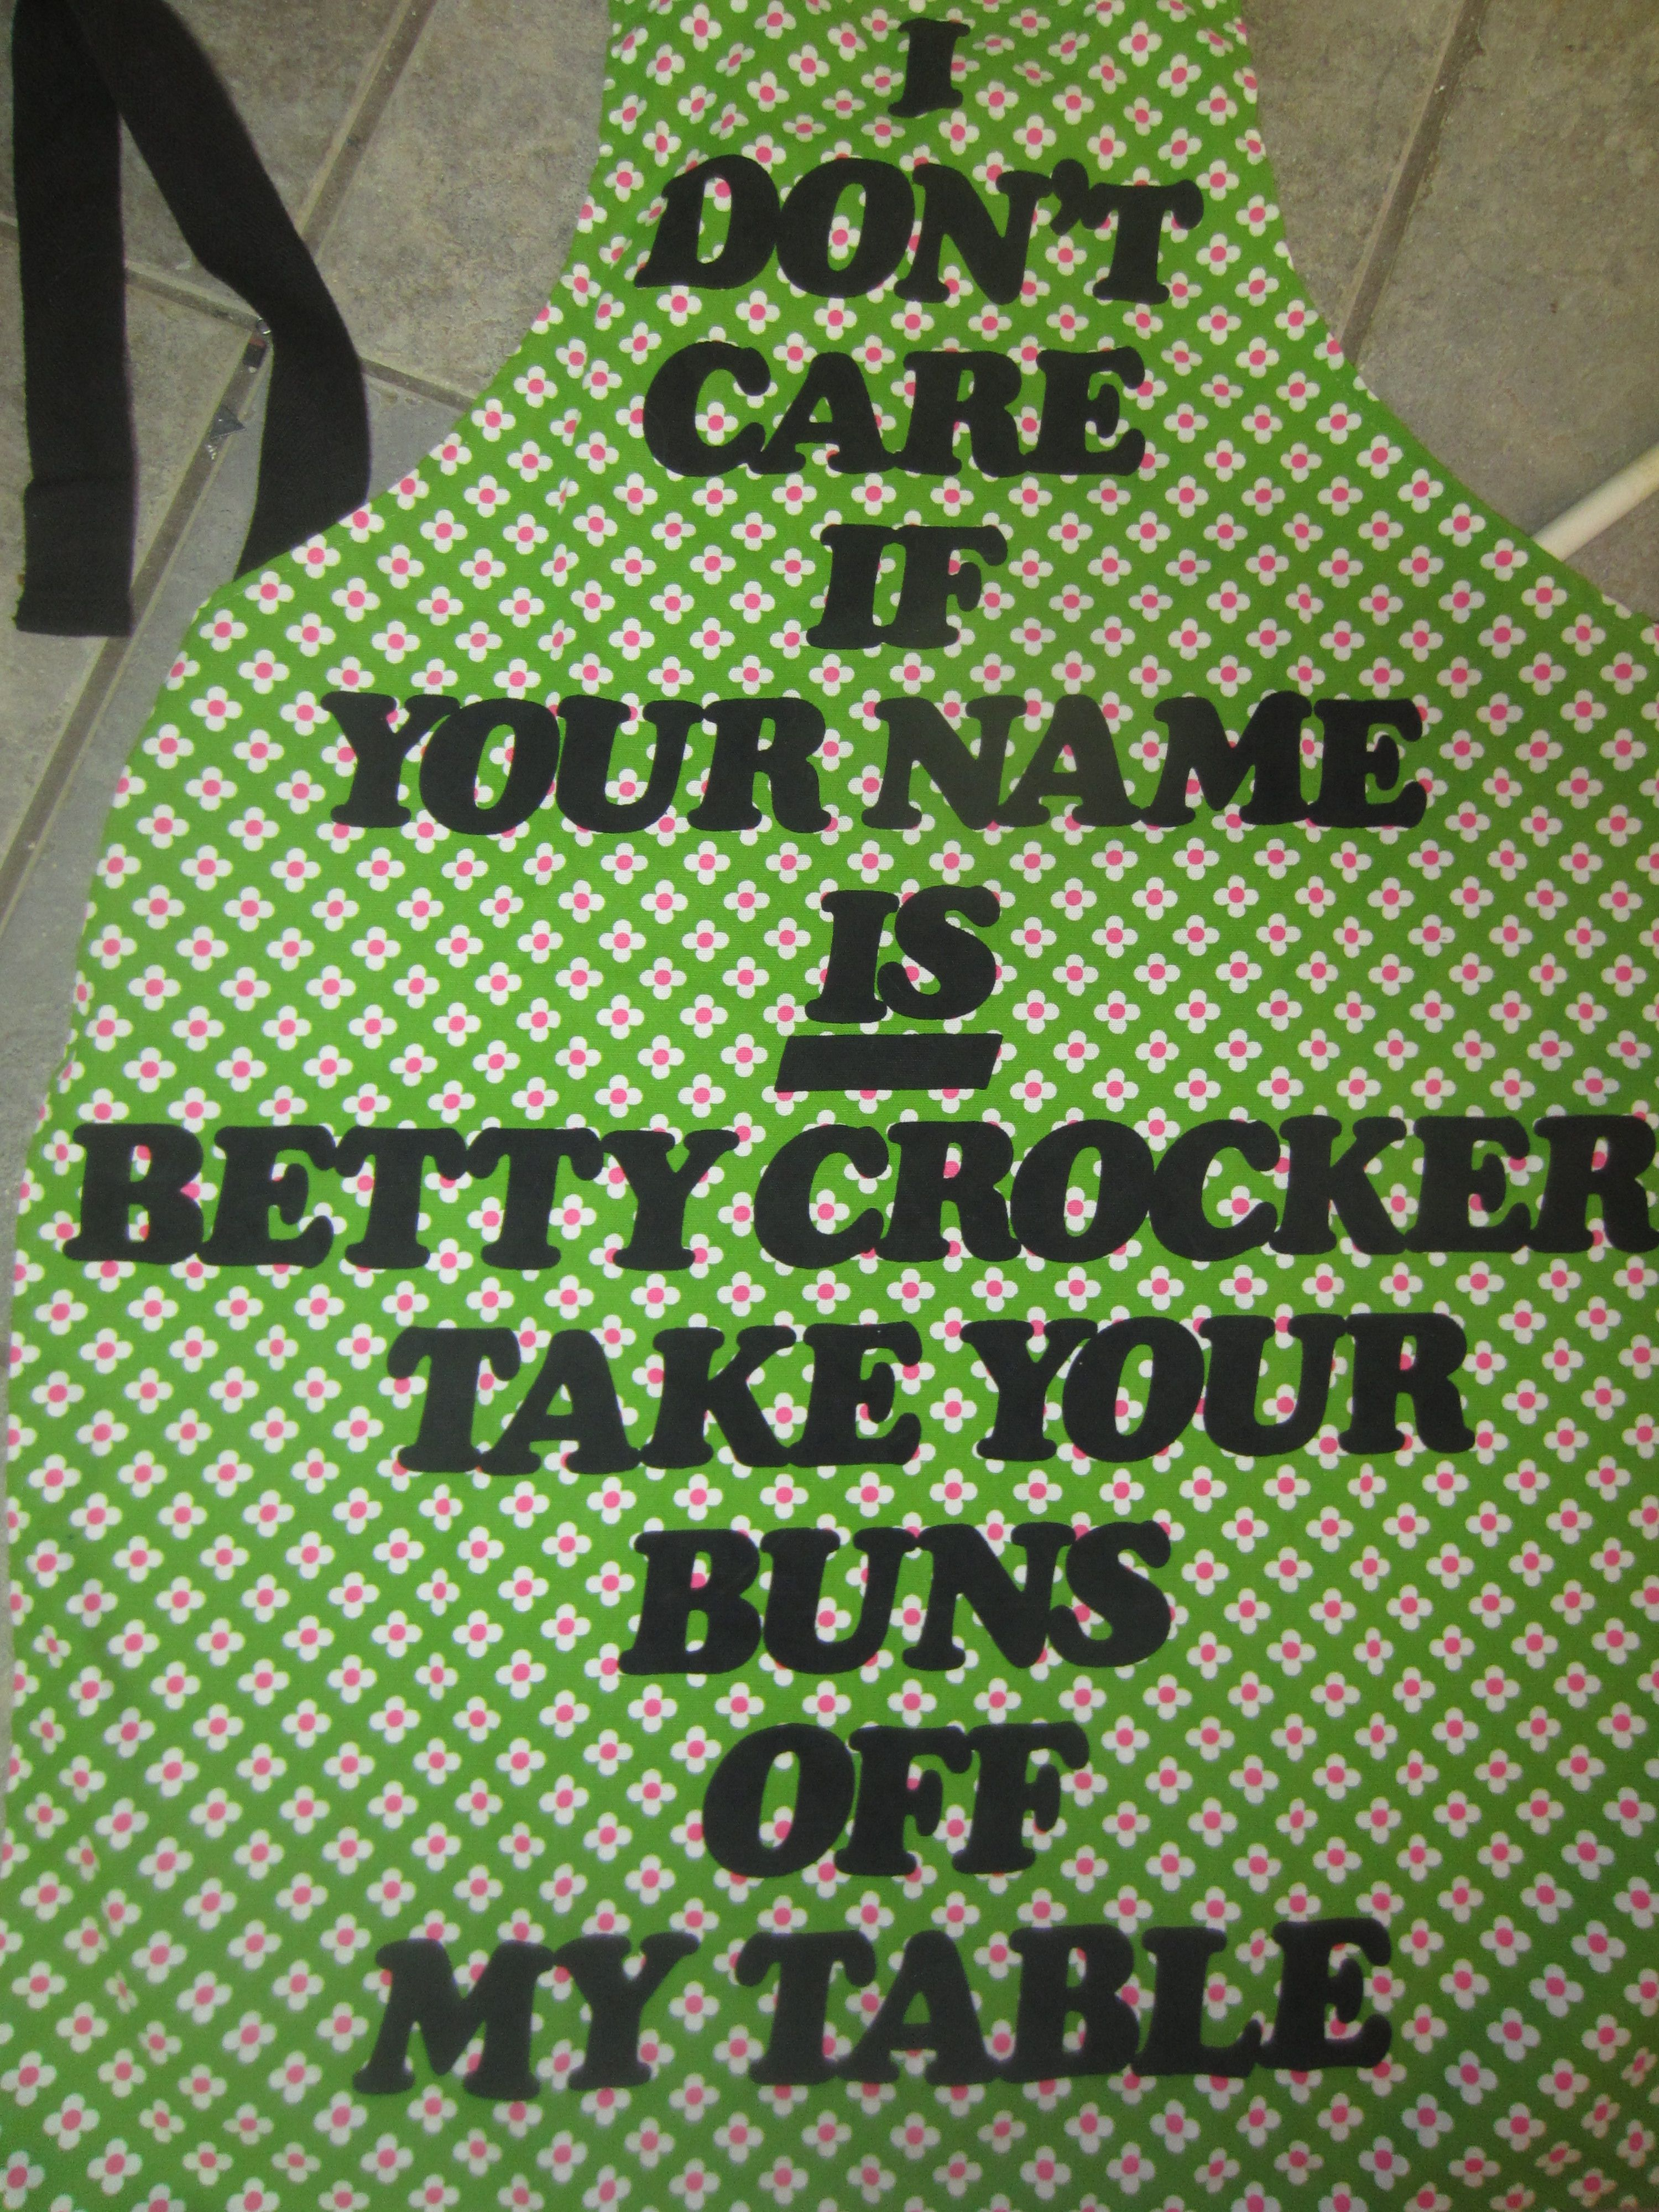 I don't care if your name is betty crocker, take your buns off my table apron novelty NOW San Francisco Vintage 1970s